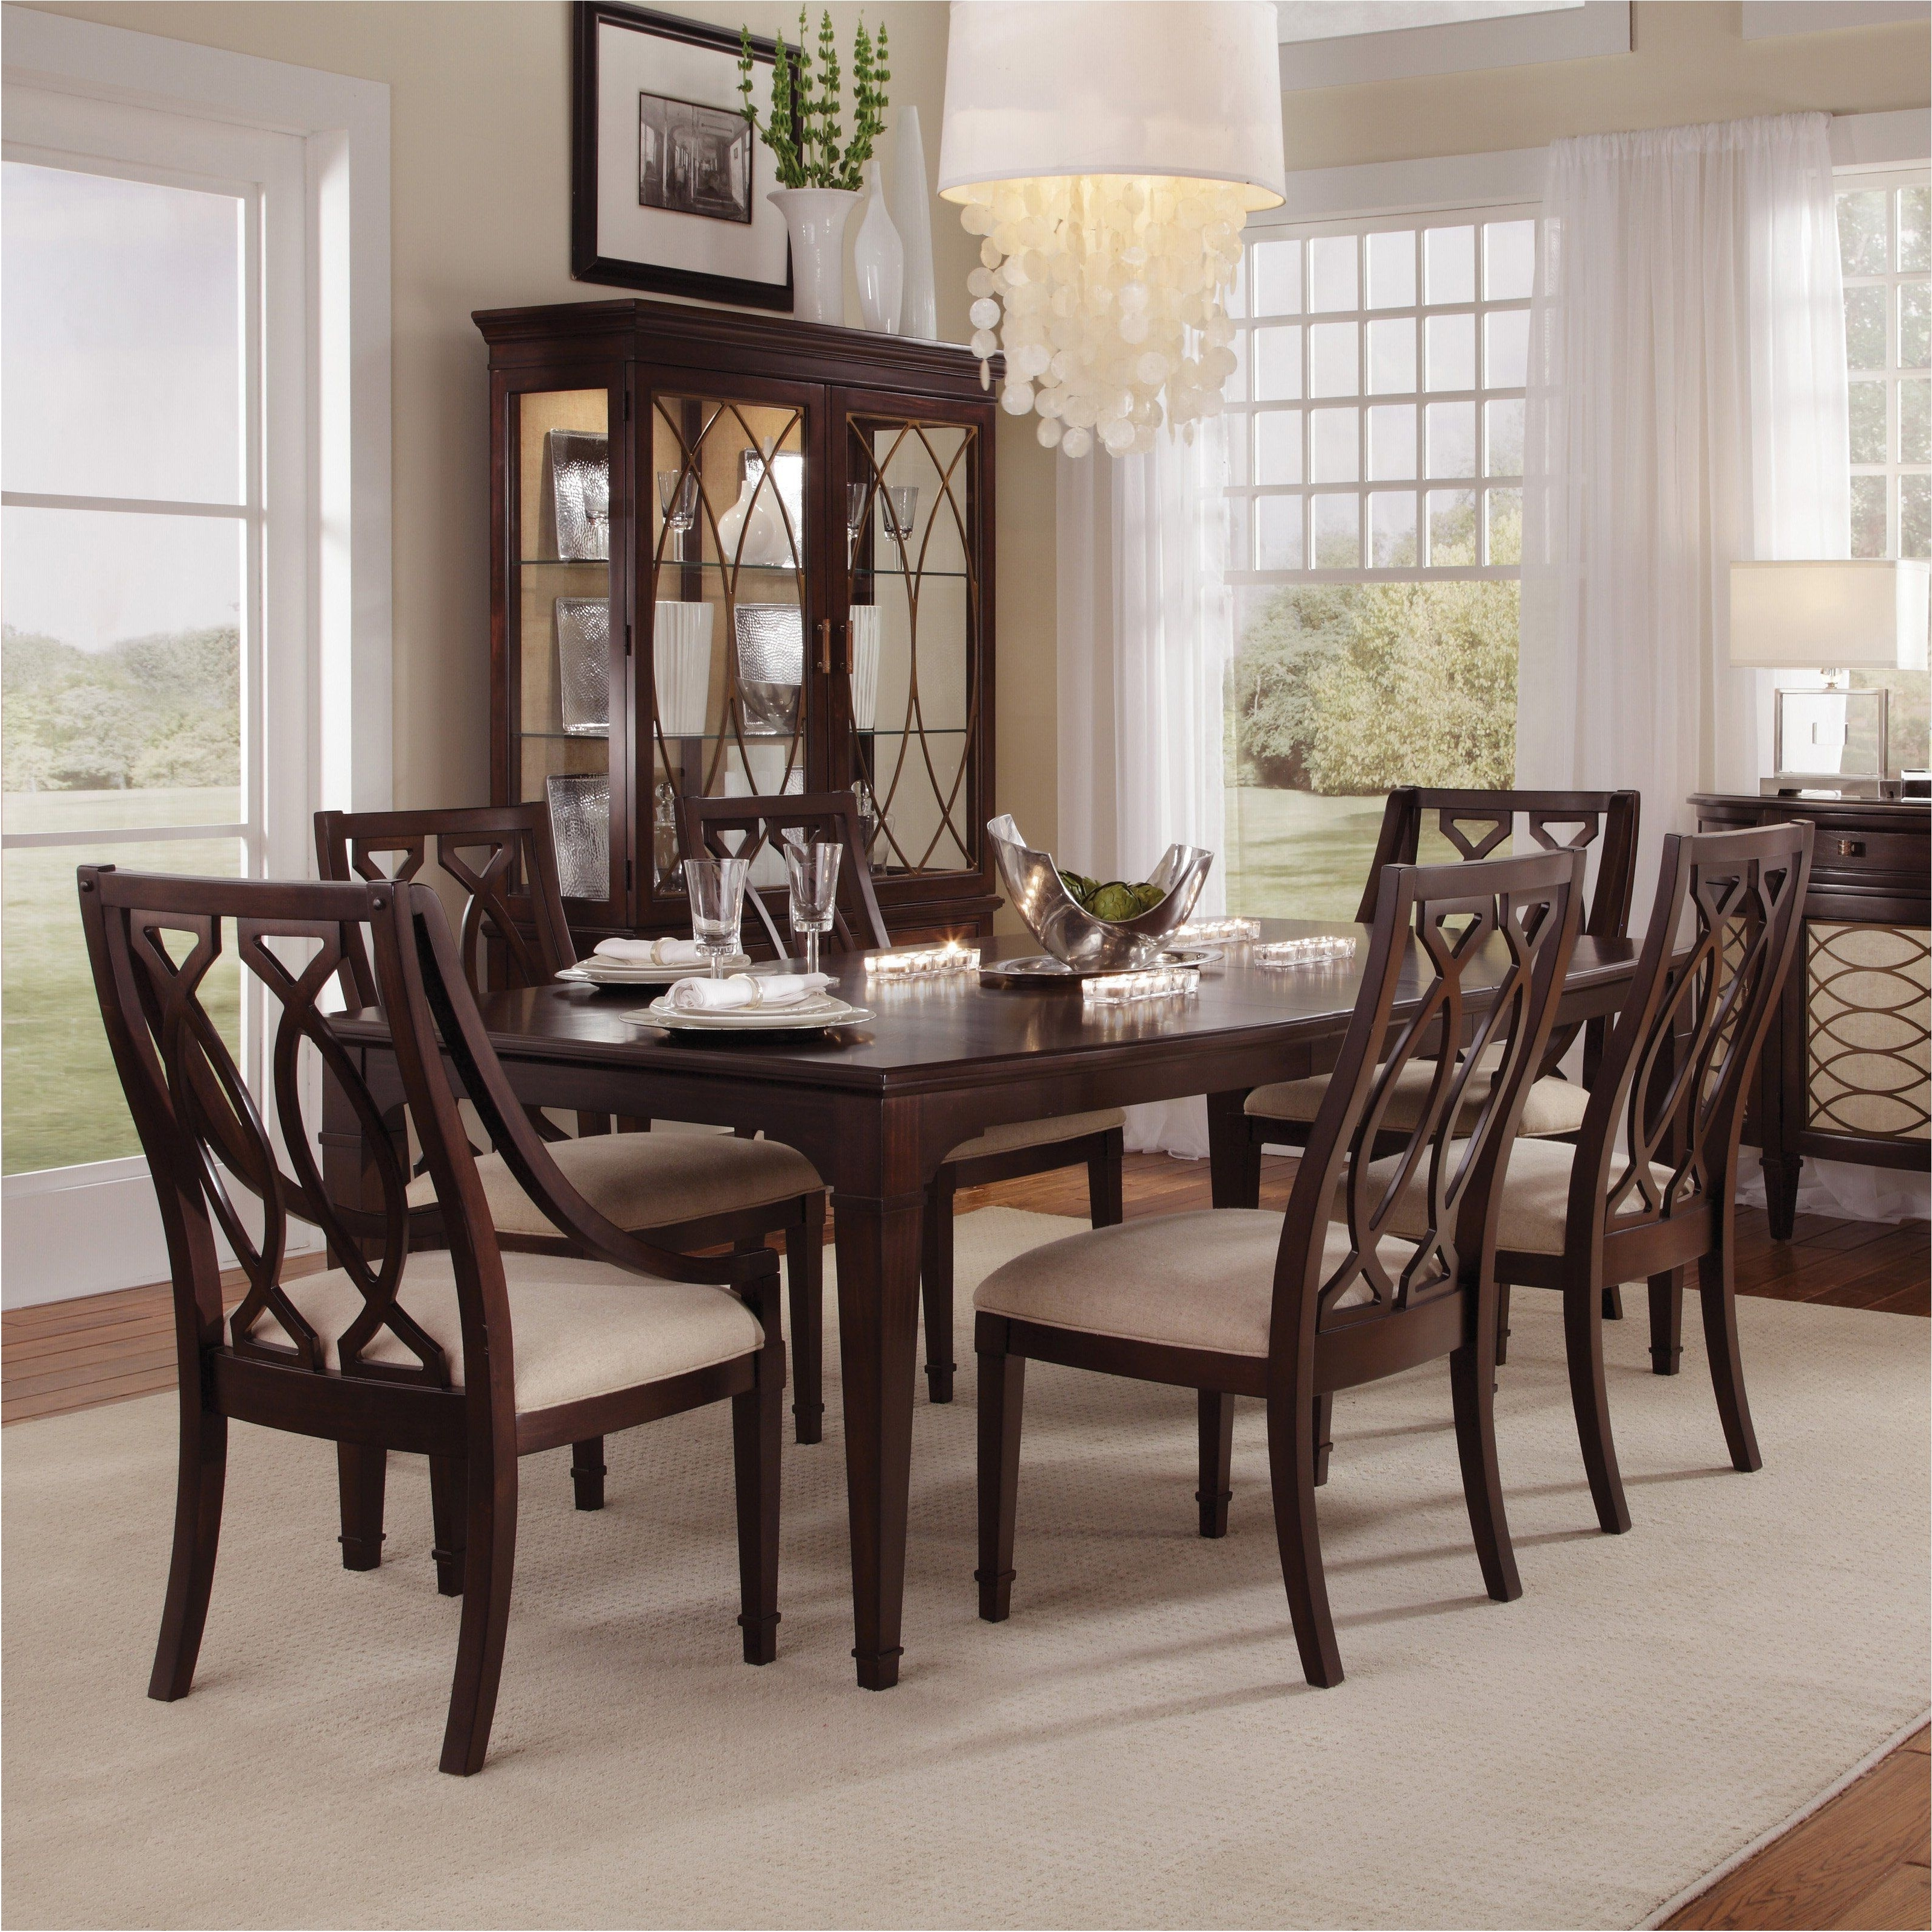 Stunning Dark Wood Dining Room Set Room Ideas – Dark Wood High Top Pertaining To Most Current Dark Wood Dining Room Furniture (View 21 of 25)